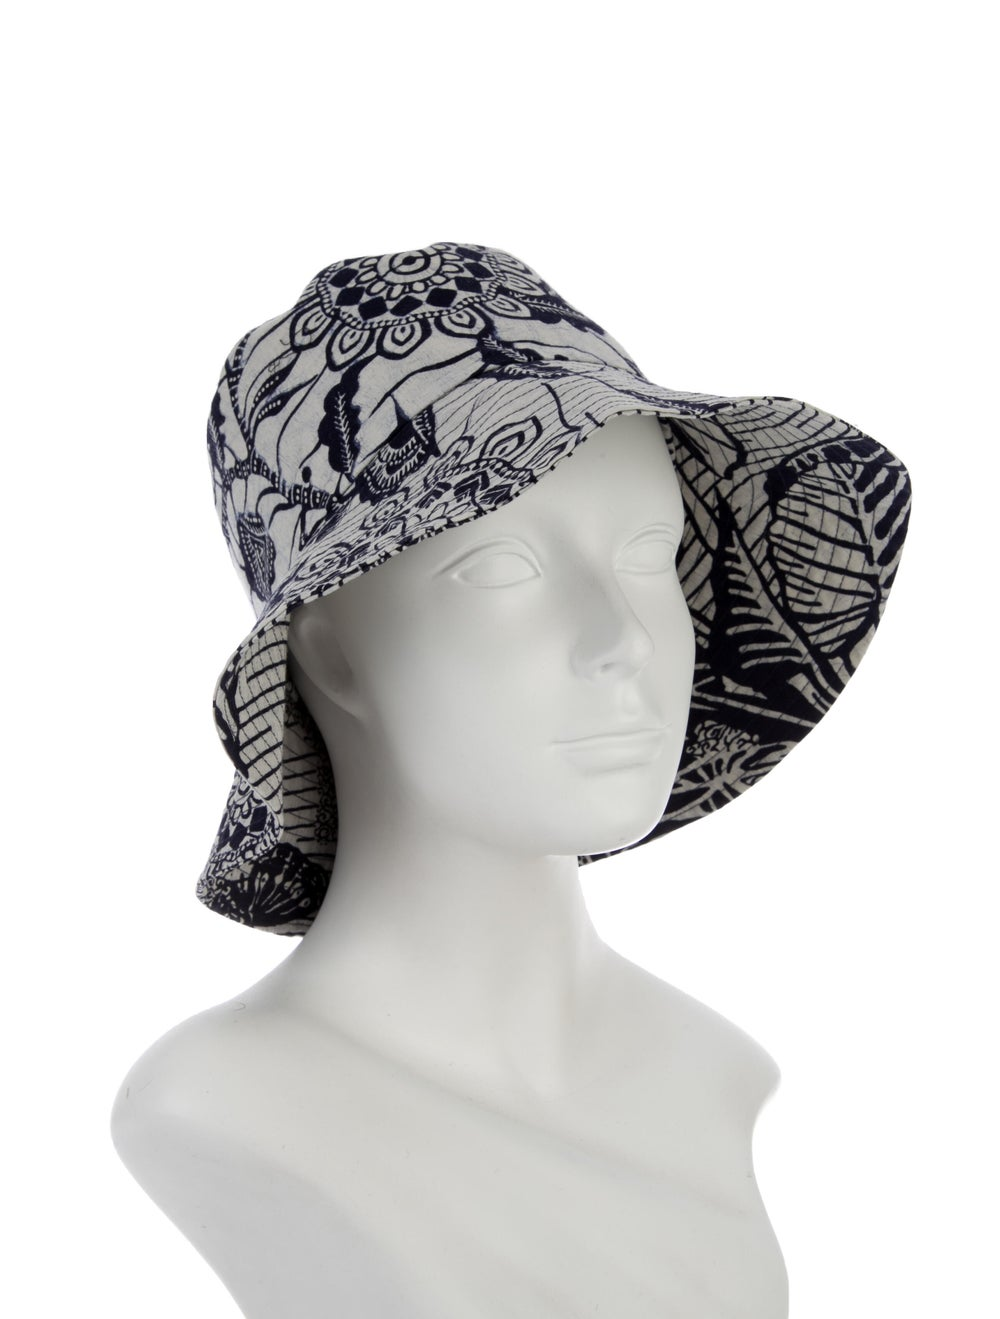 Christian Dior Printed Canvas Bucket Hat Navy - image 3